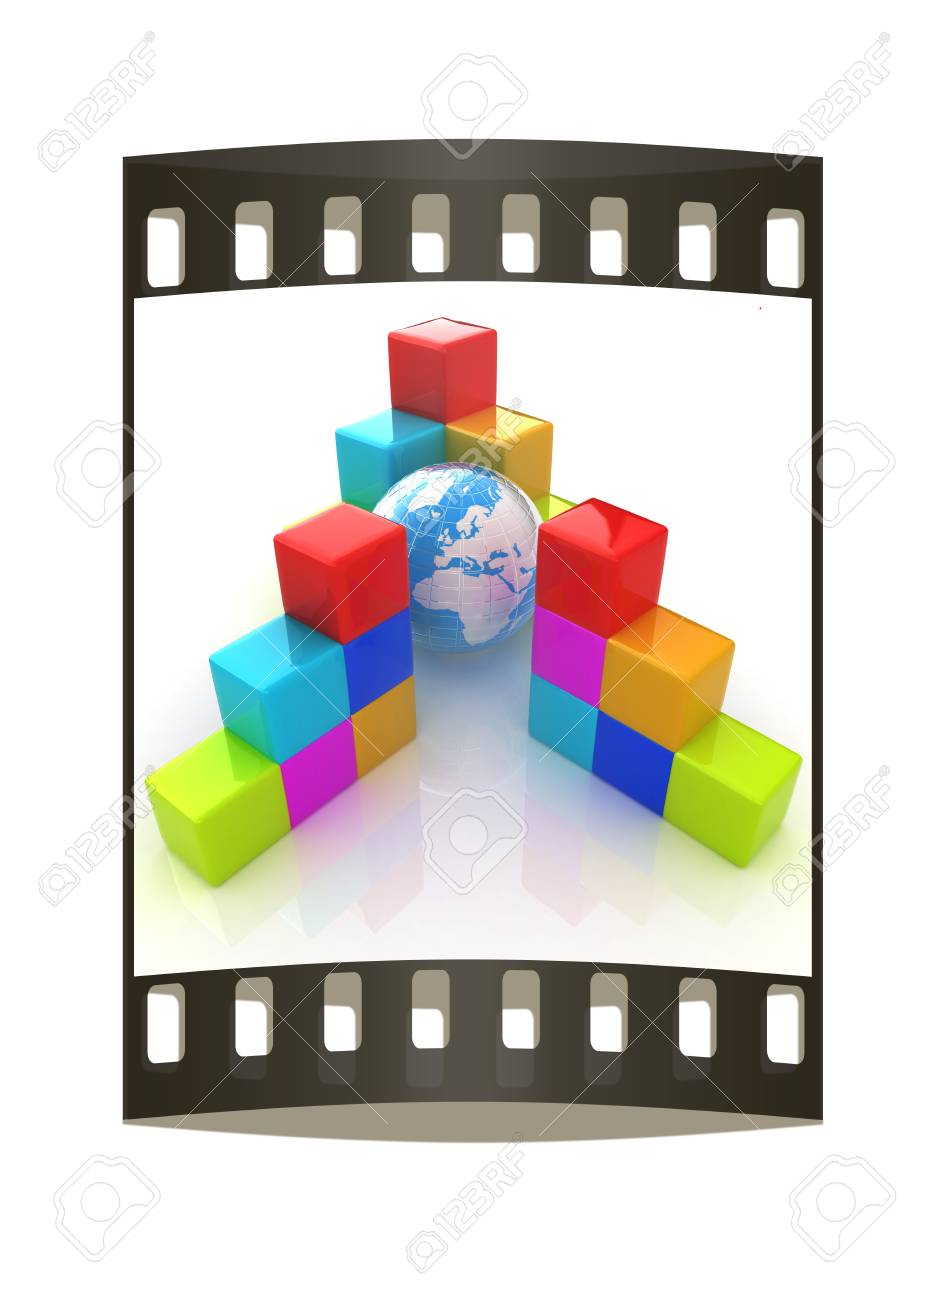 Colorful Block Diagram Global Concept The Film Strip Stock Photo